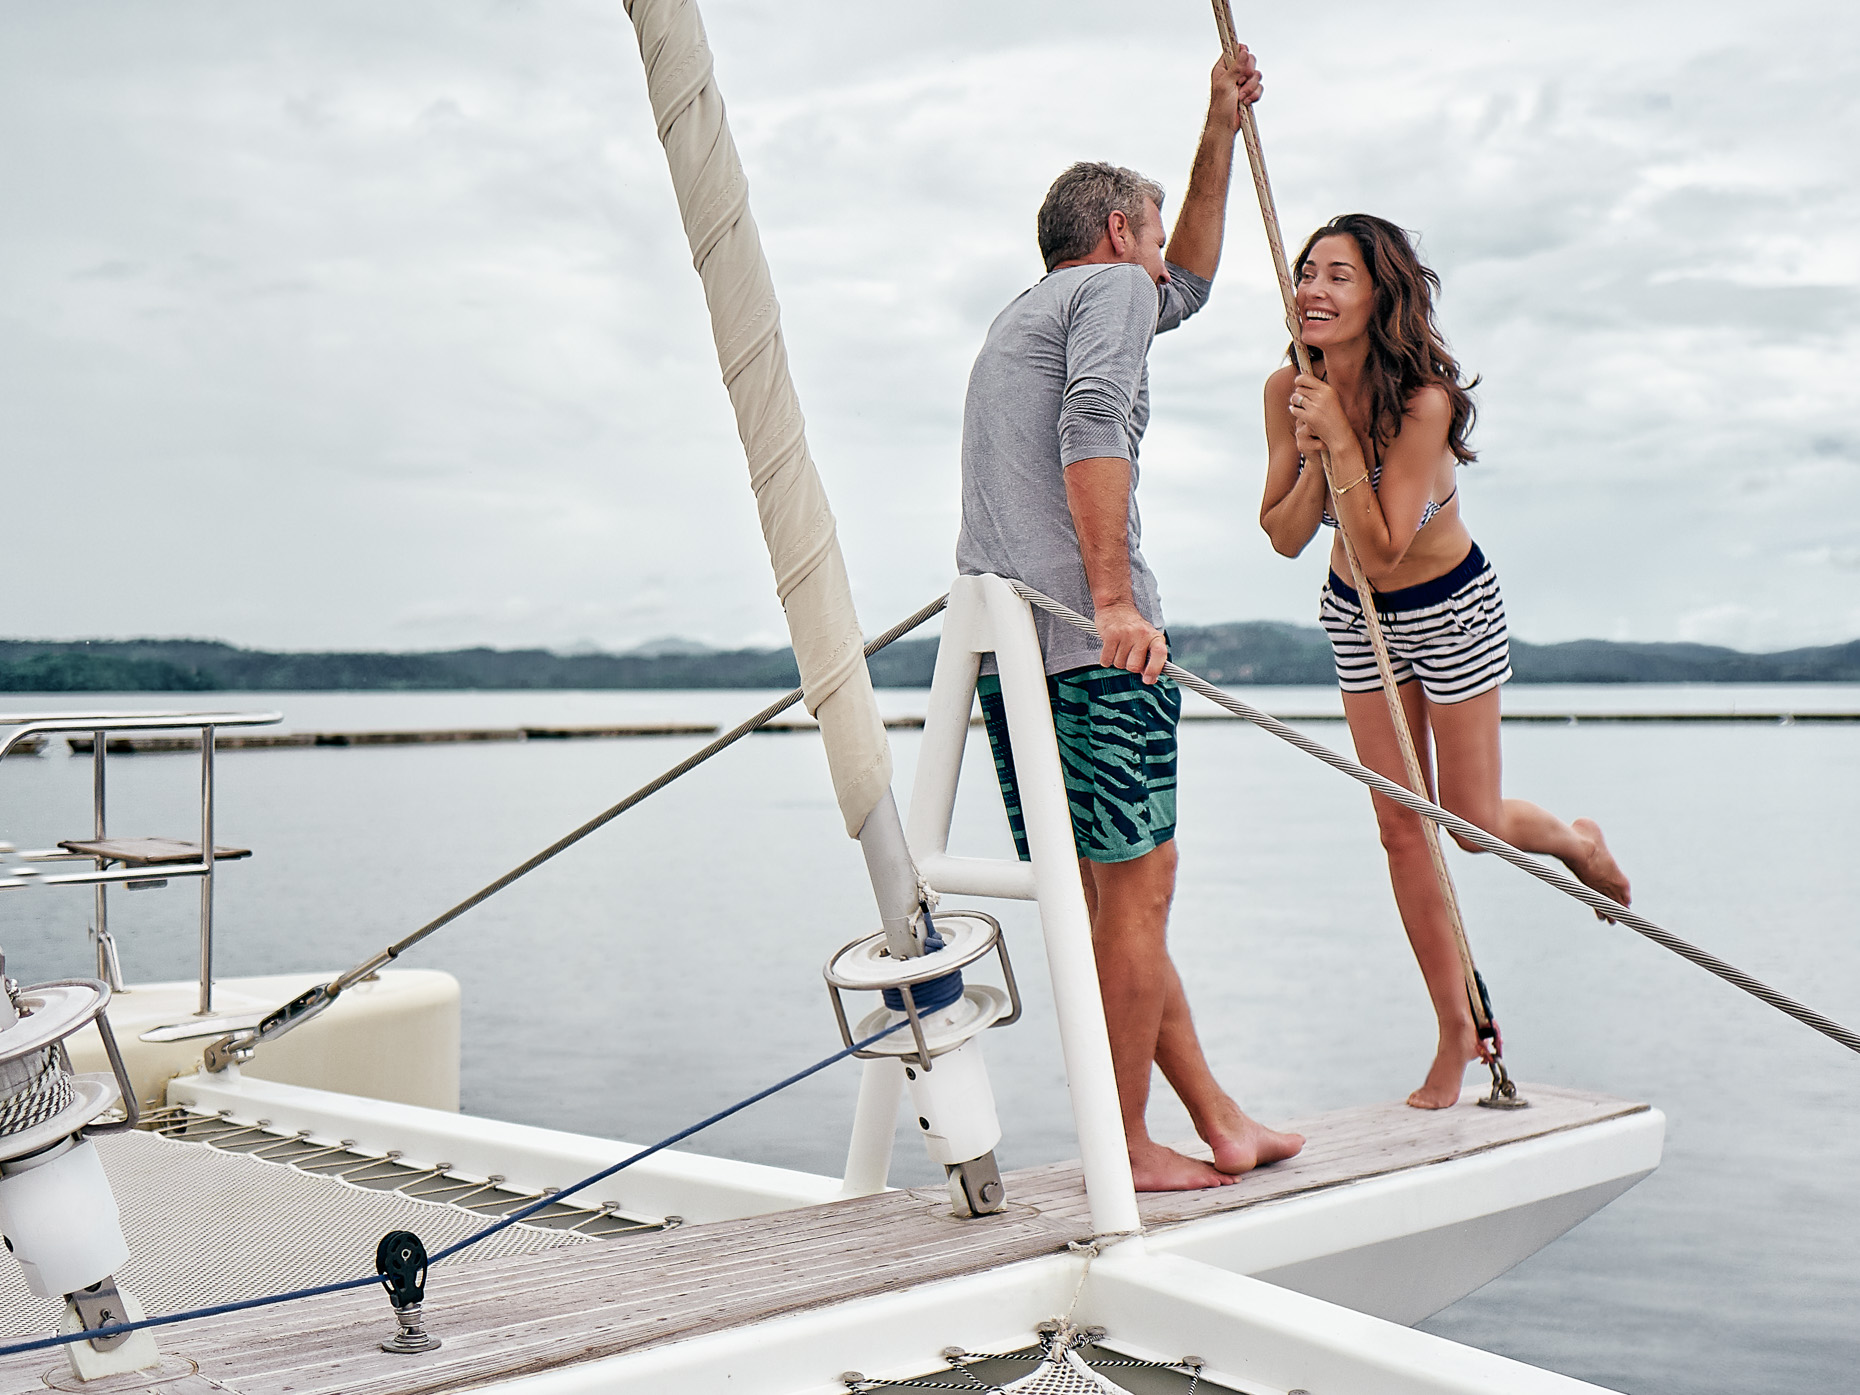 Kevin Steele - A couple on a catamaran having fun laughing